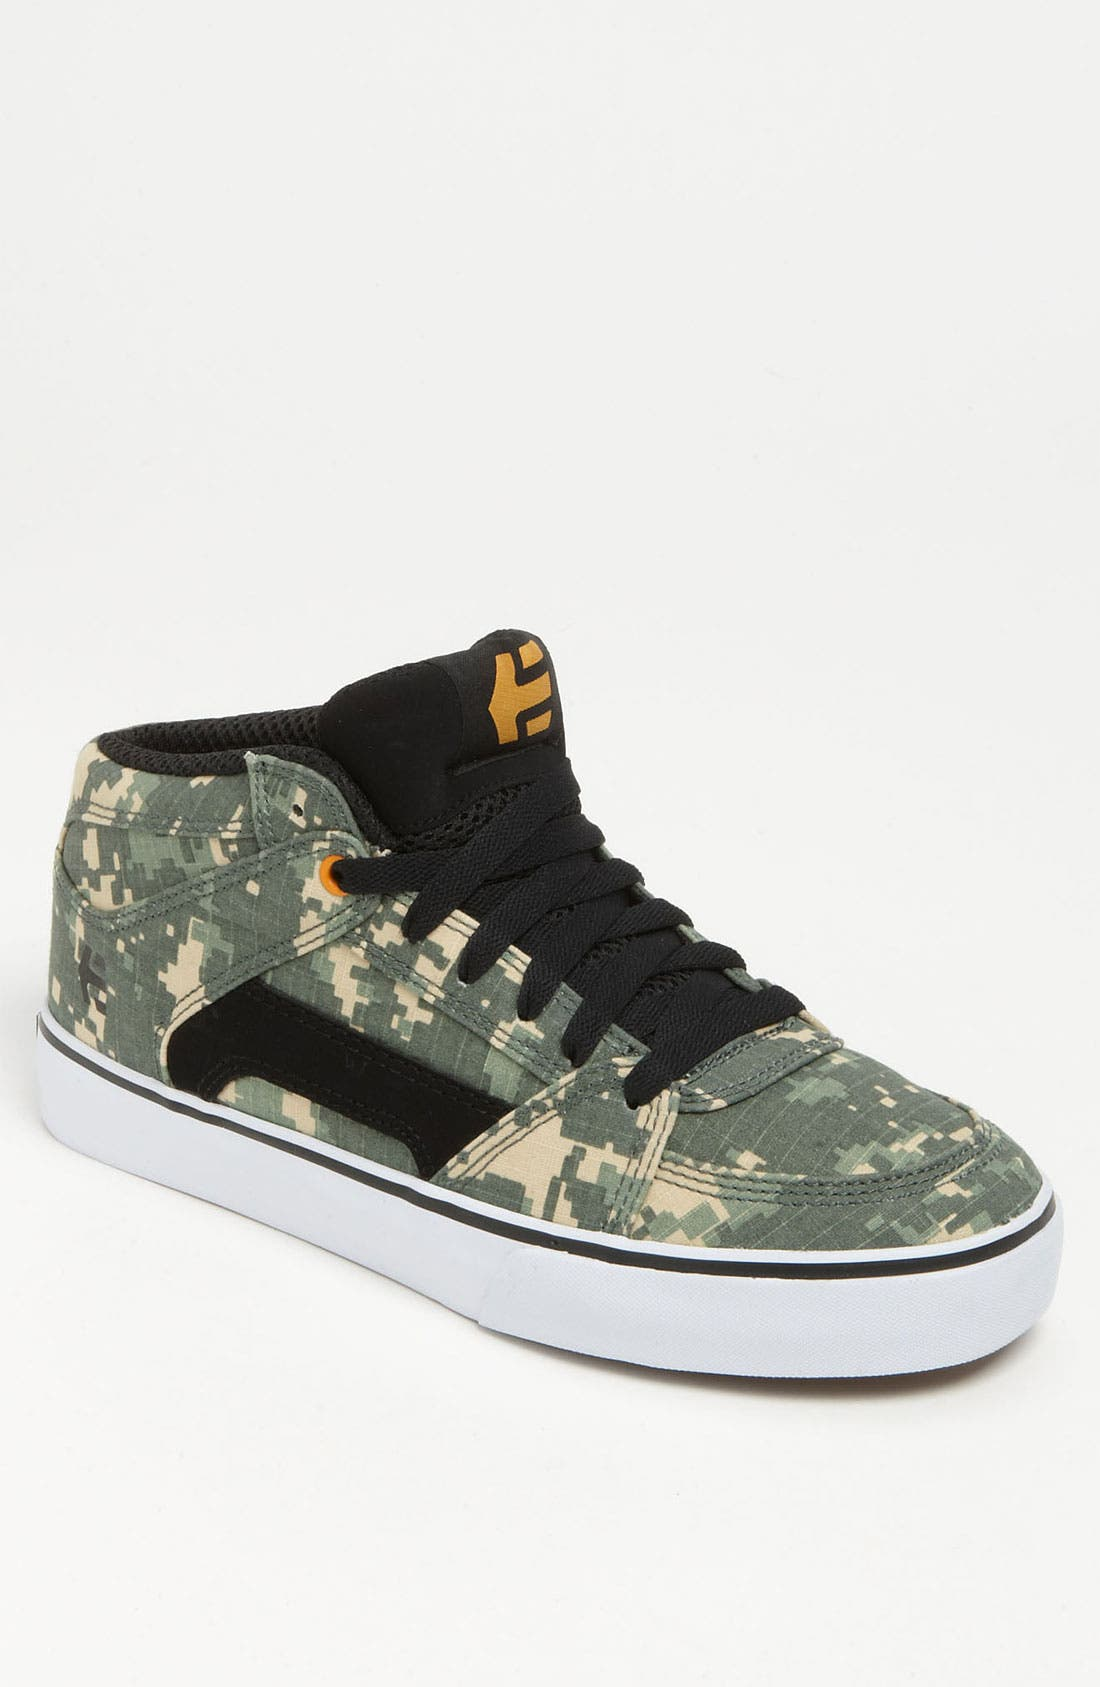 Alternate Image 1 Selected - Etnies 'RVM' Skate Shoe (Men)